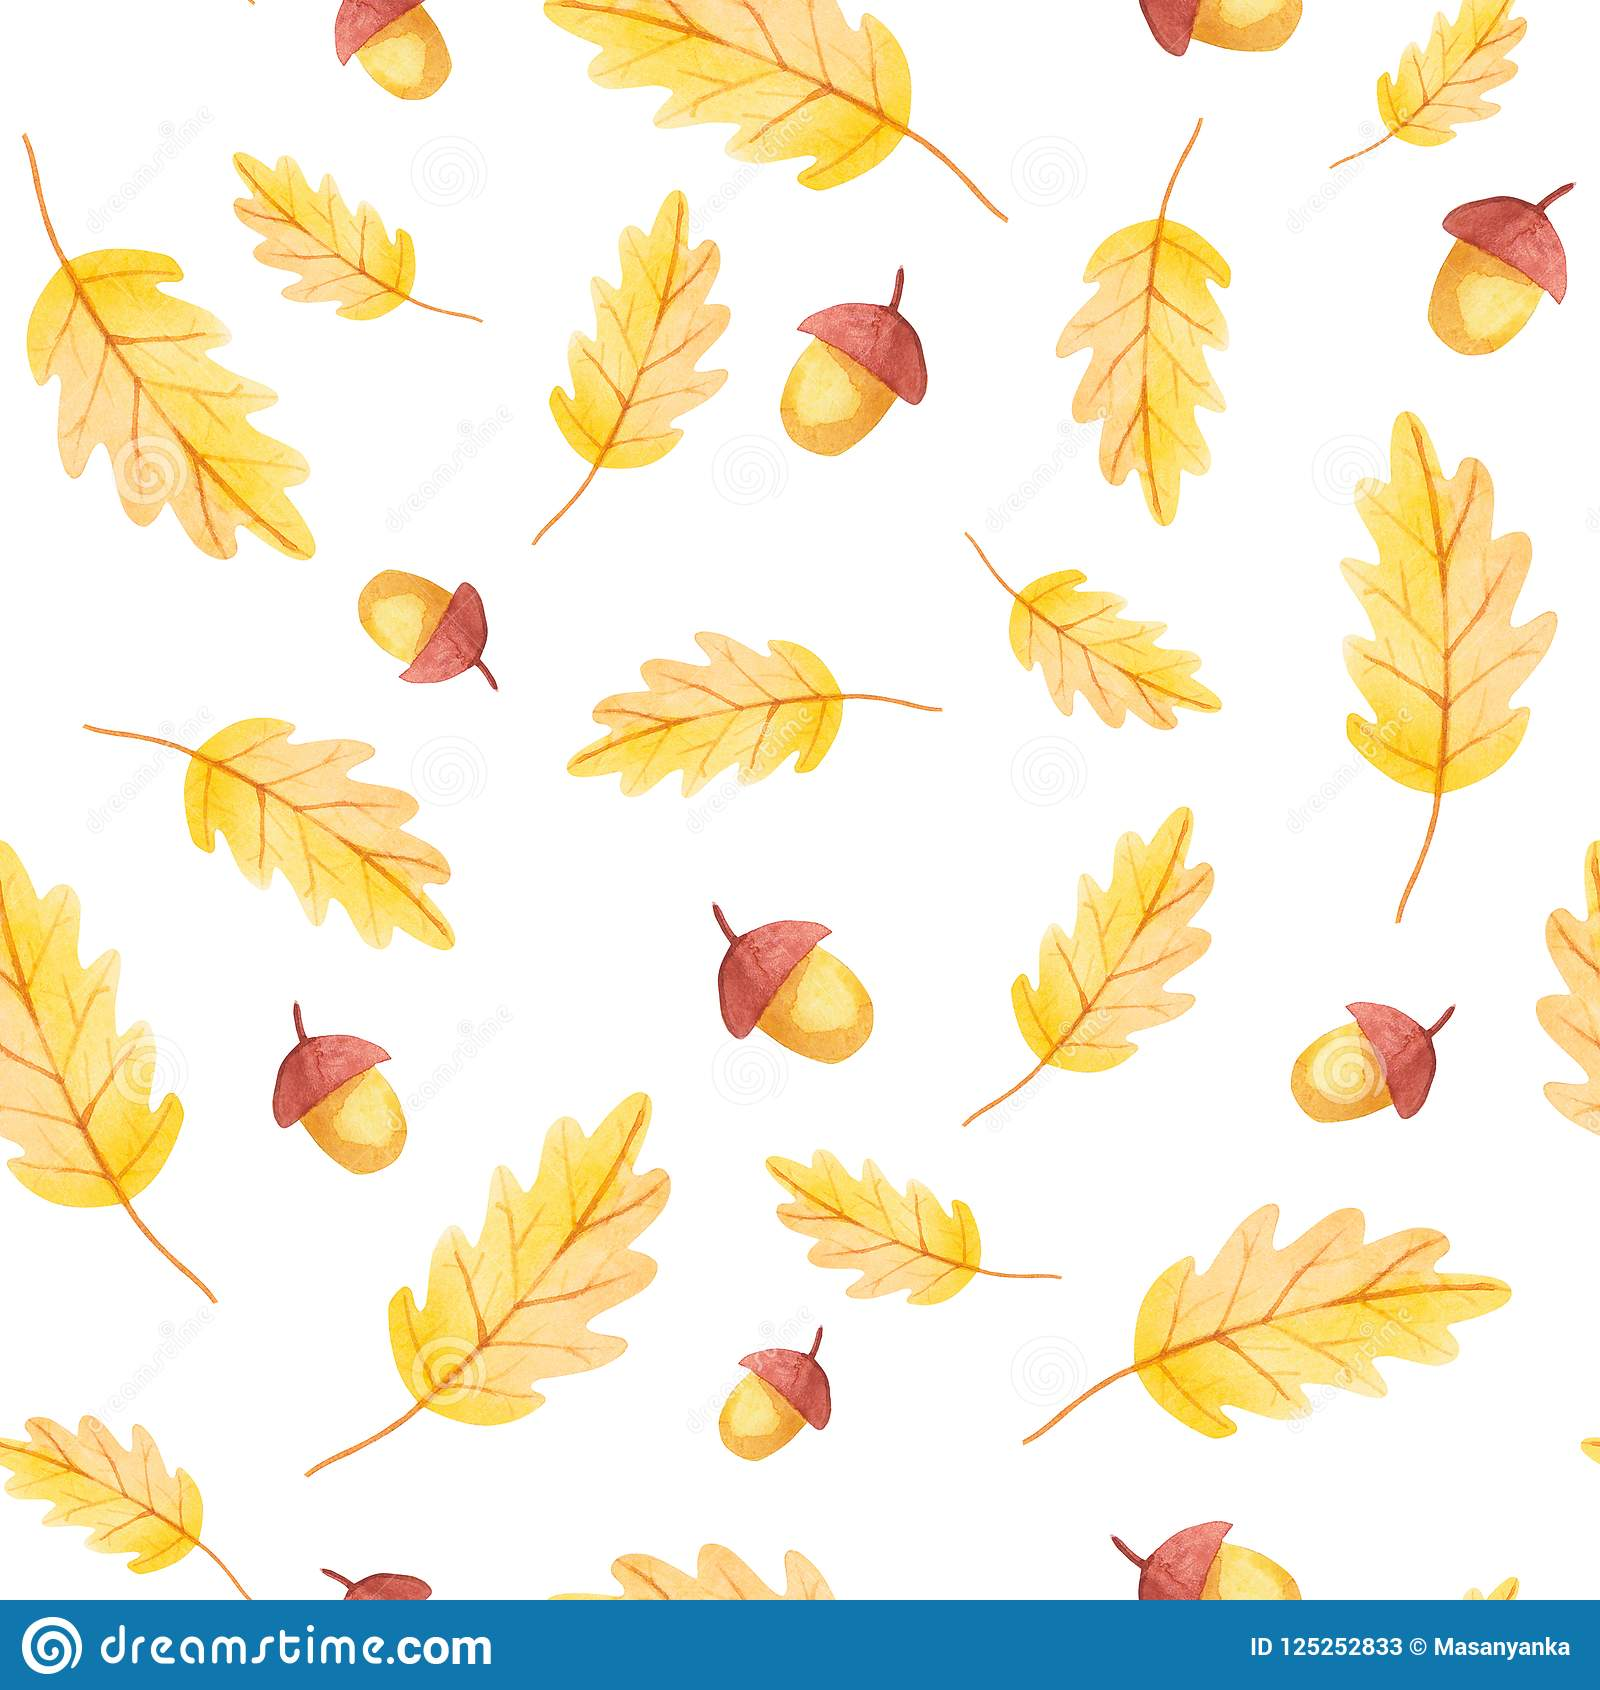 Fall vibes. Acorn and yellow leaf seamless pattern.